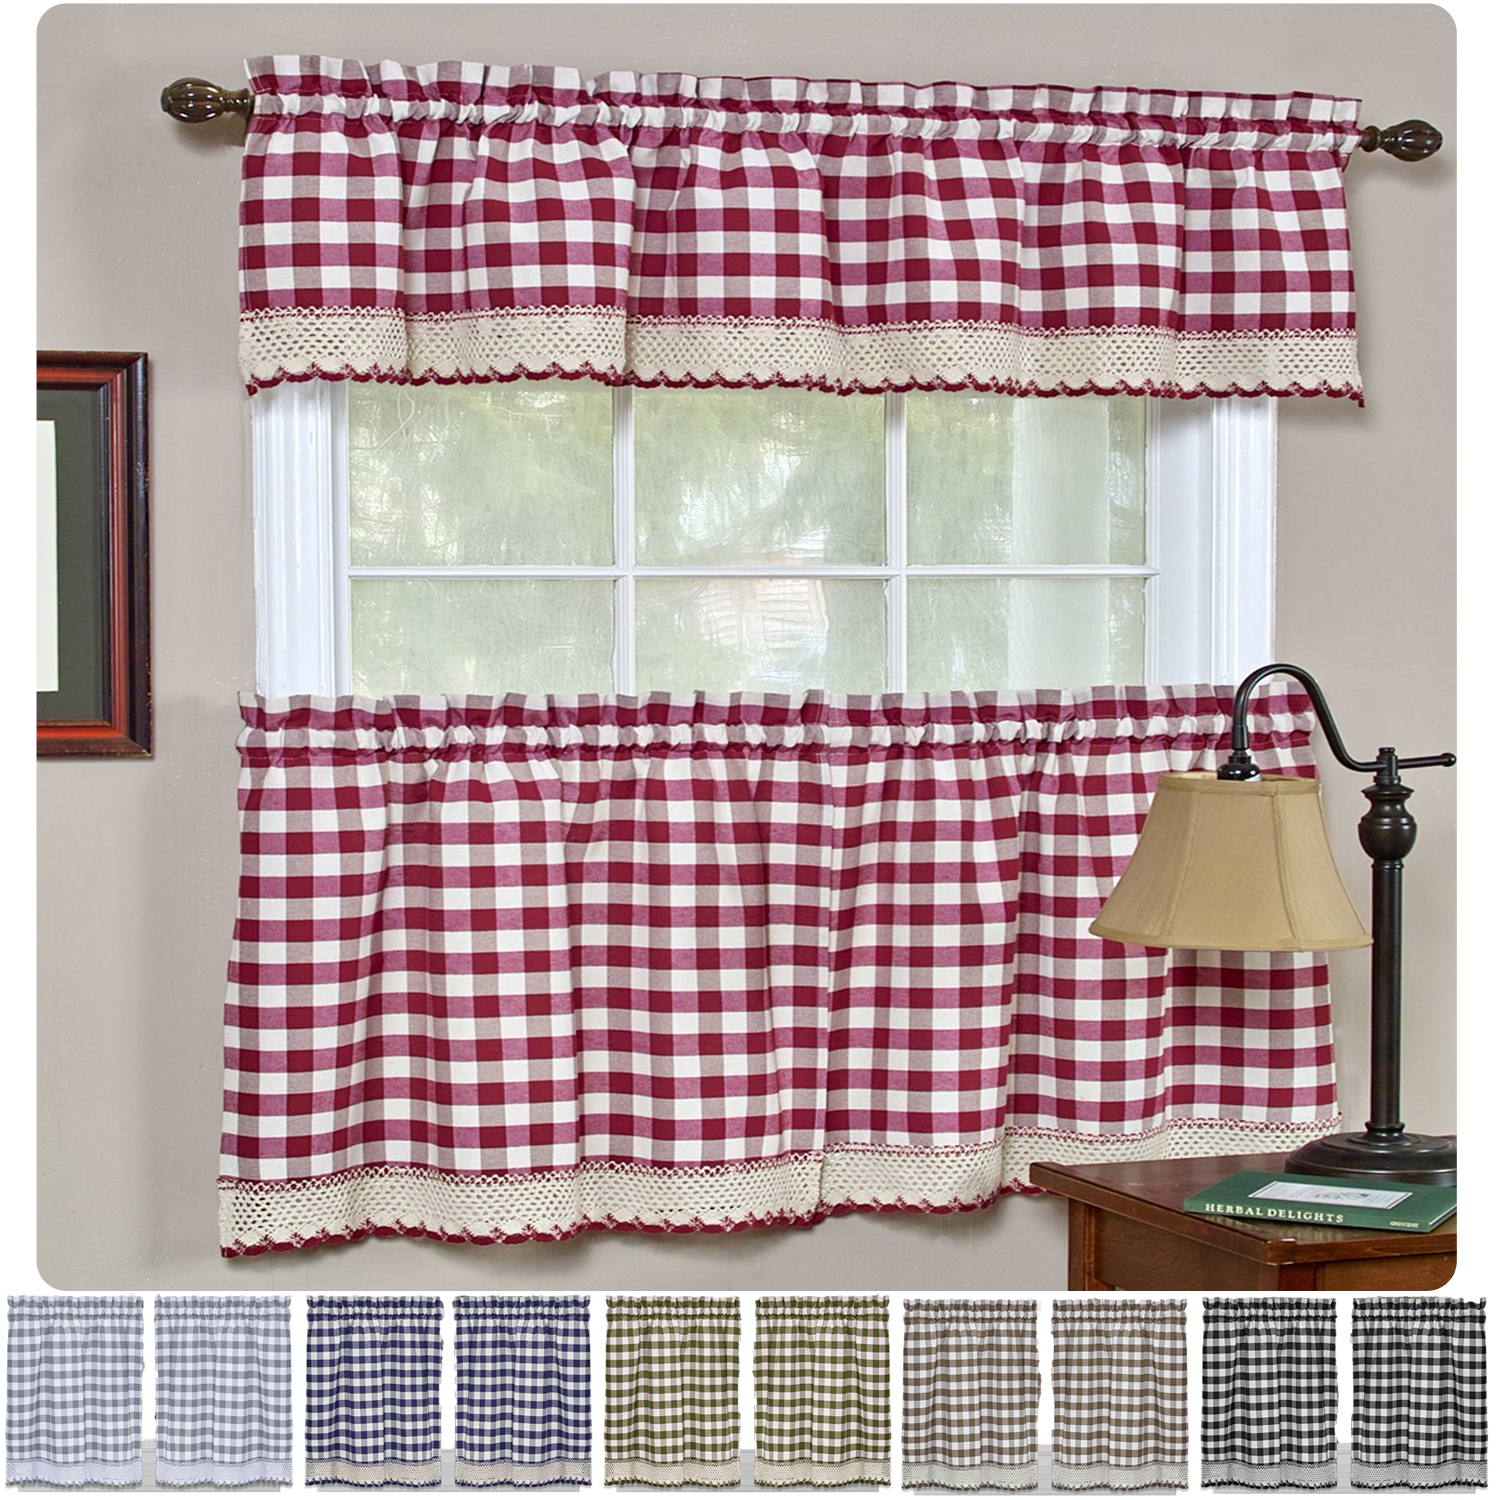 Details About Window Curtain Tier Pair & Valance 3pc Set Checked Plaid Gingham Kitchen Panel With Regard To Window Curtain Tier And Valance Sets (View 19 of 20)